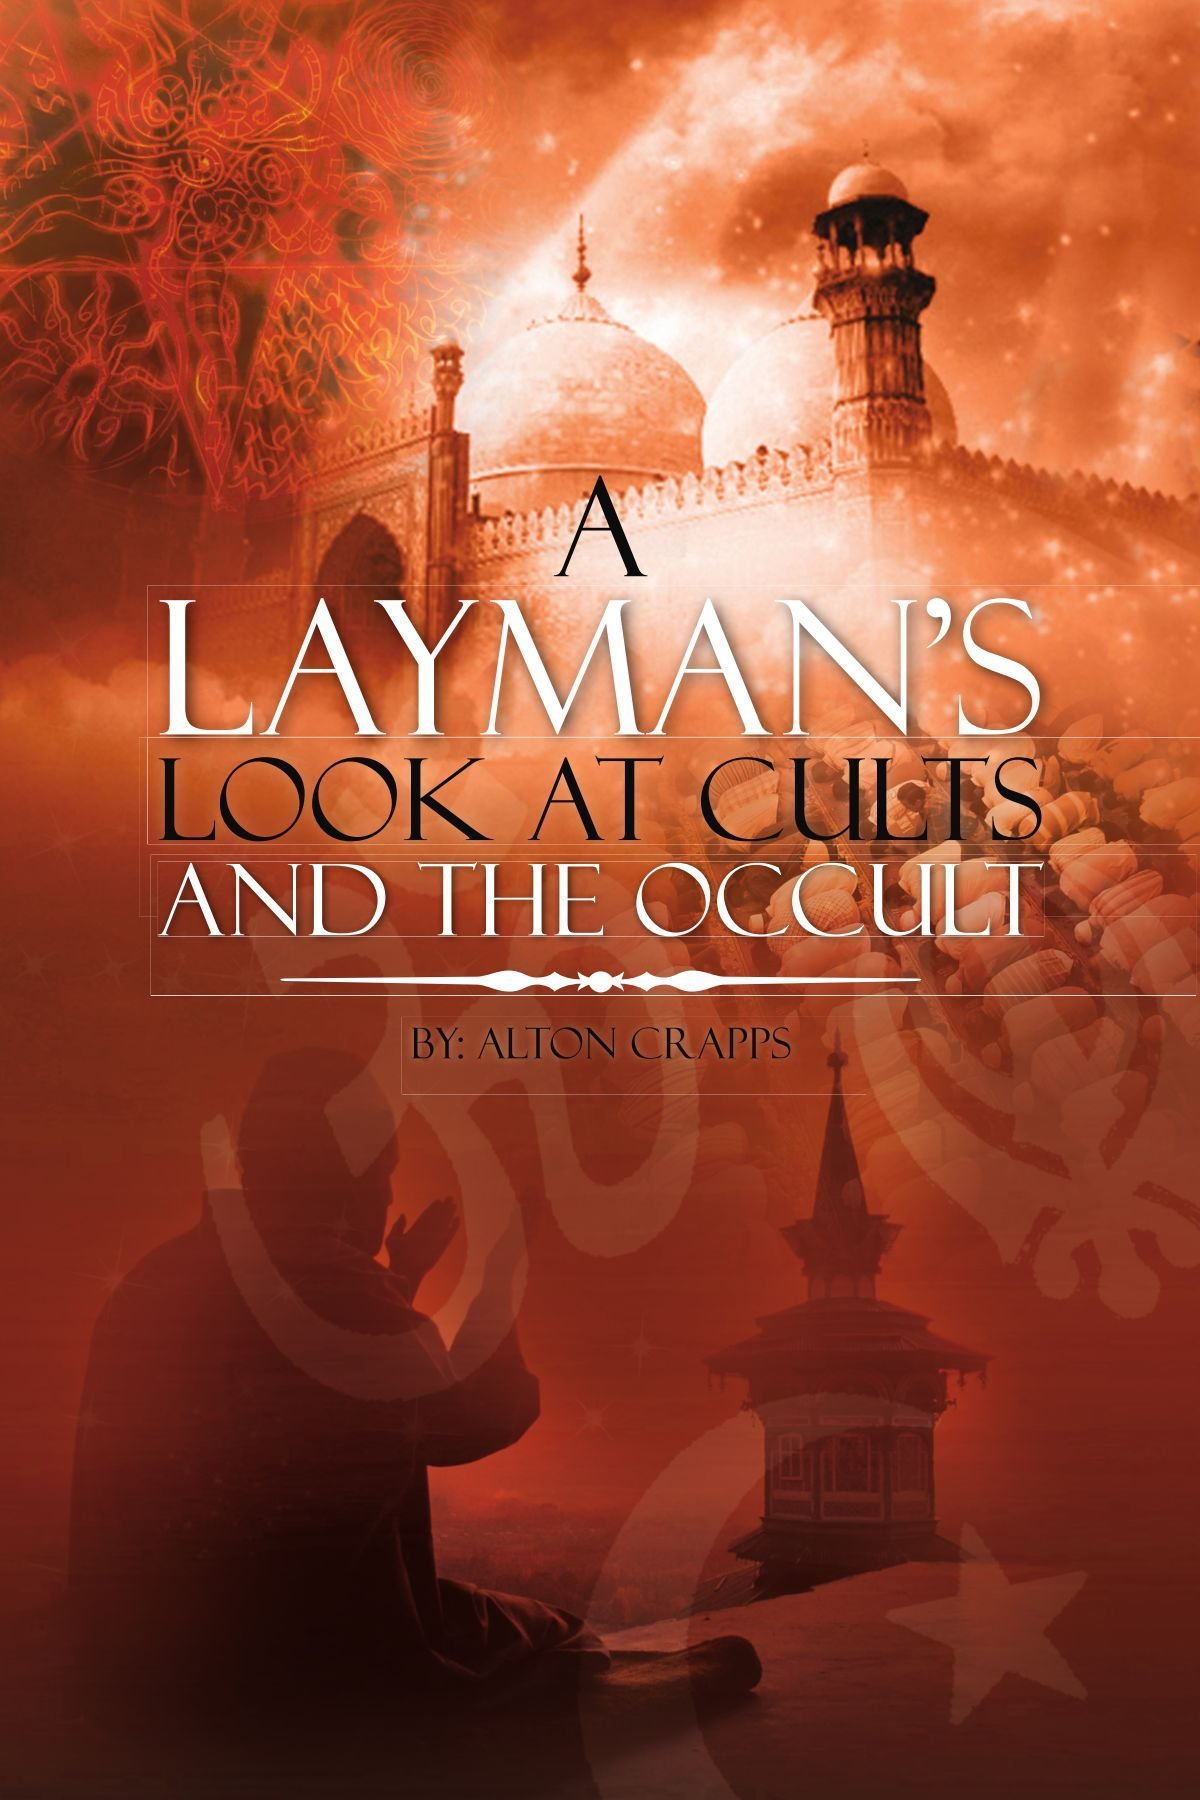 Download A Layman's Look at Cults And The Occult pdf